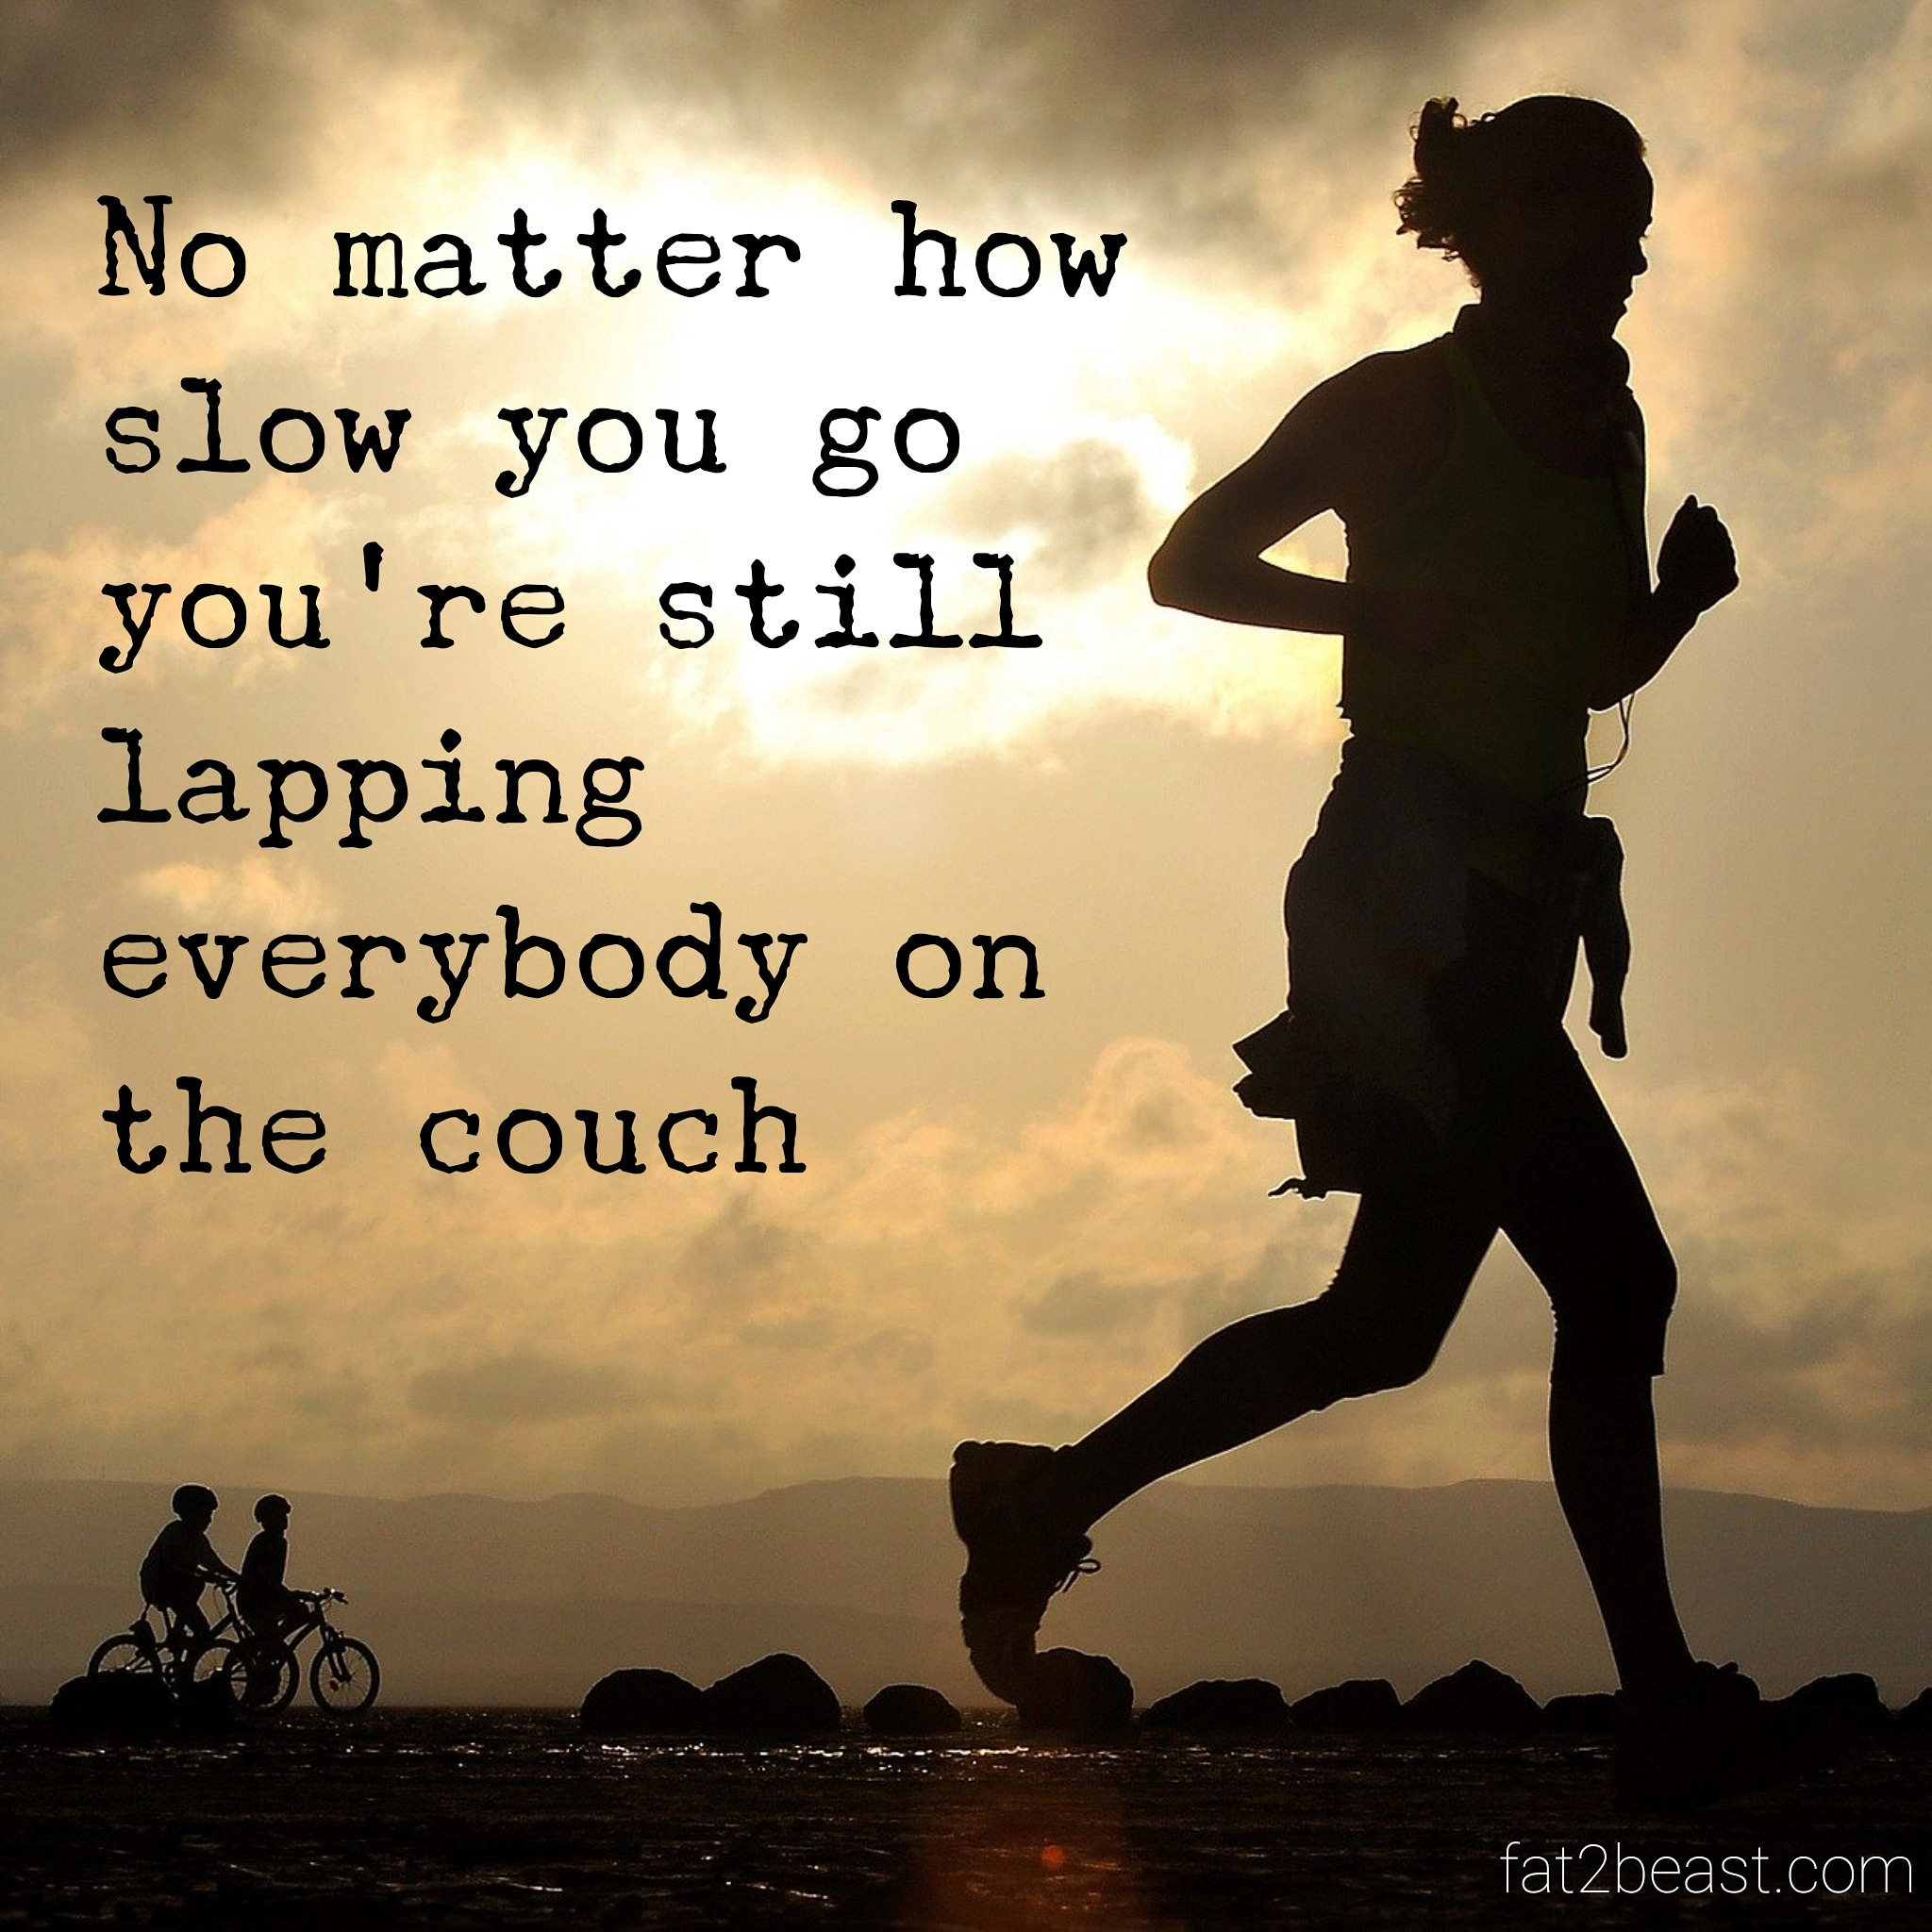 [IMAGE]No matter how slow you go you're still lapping everybody on the couch